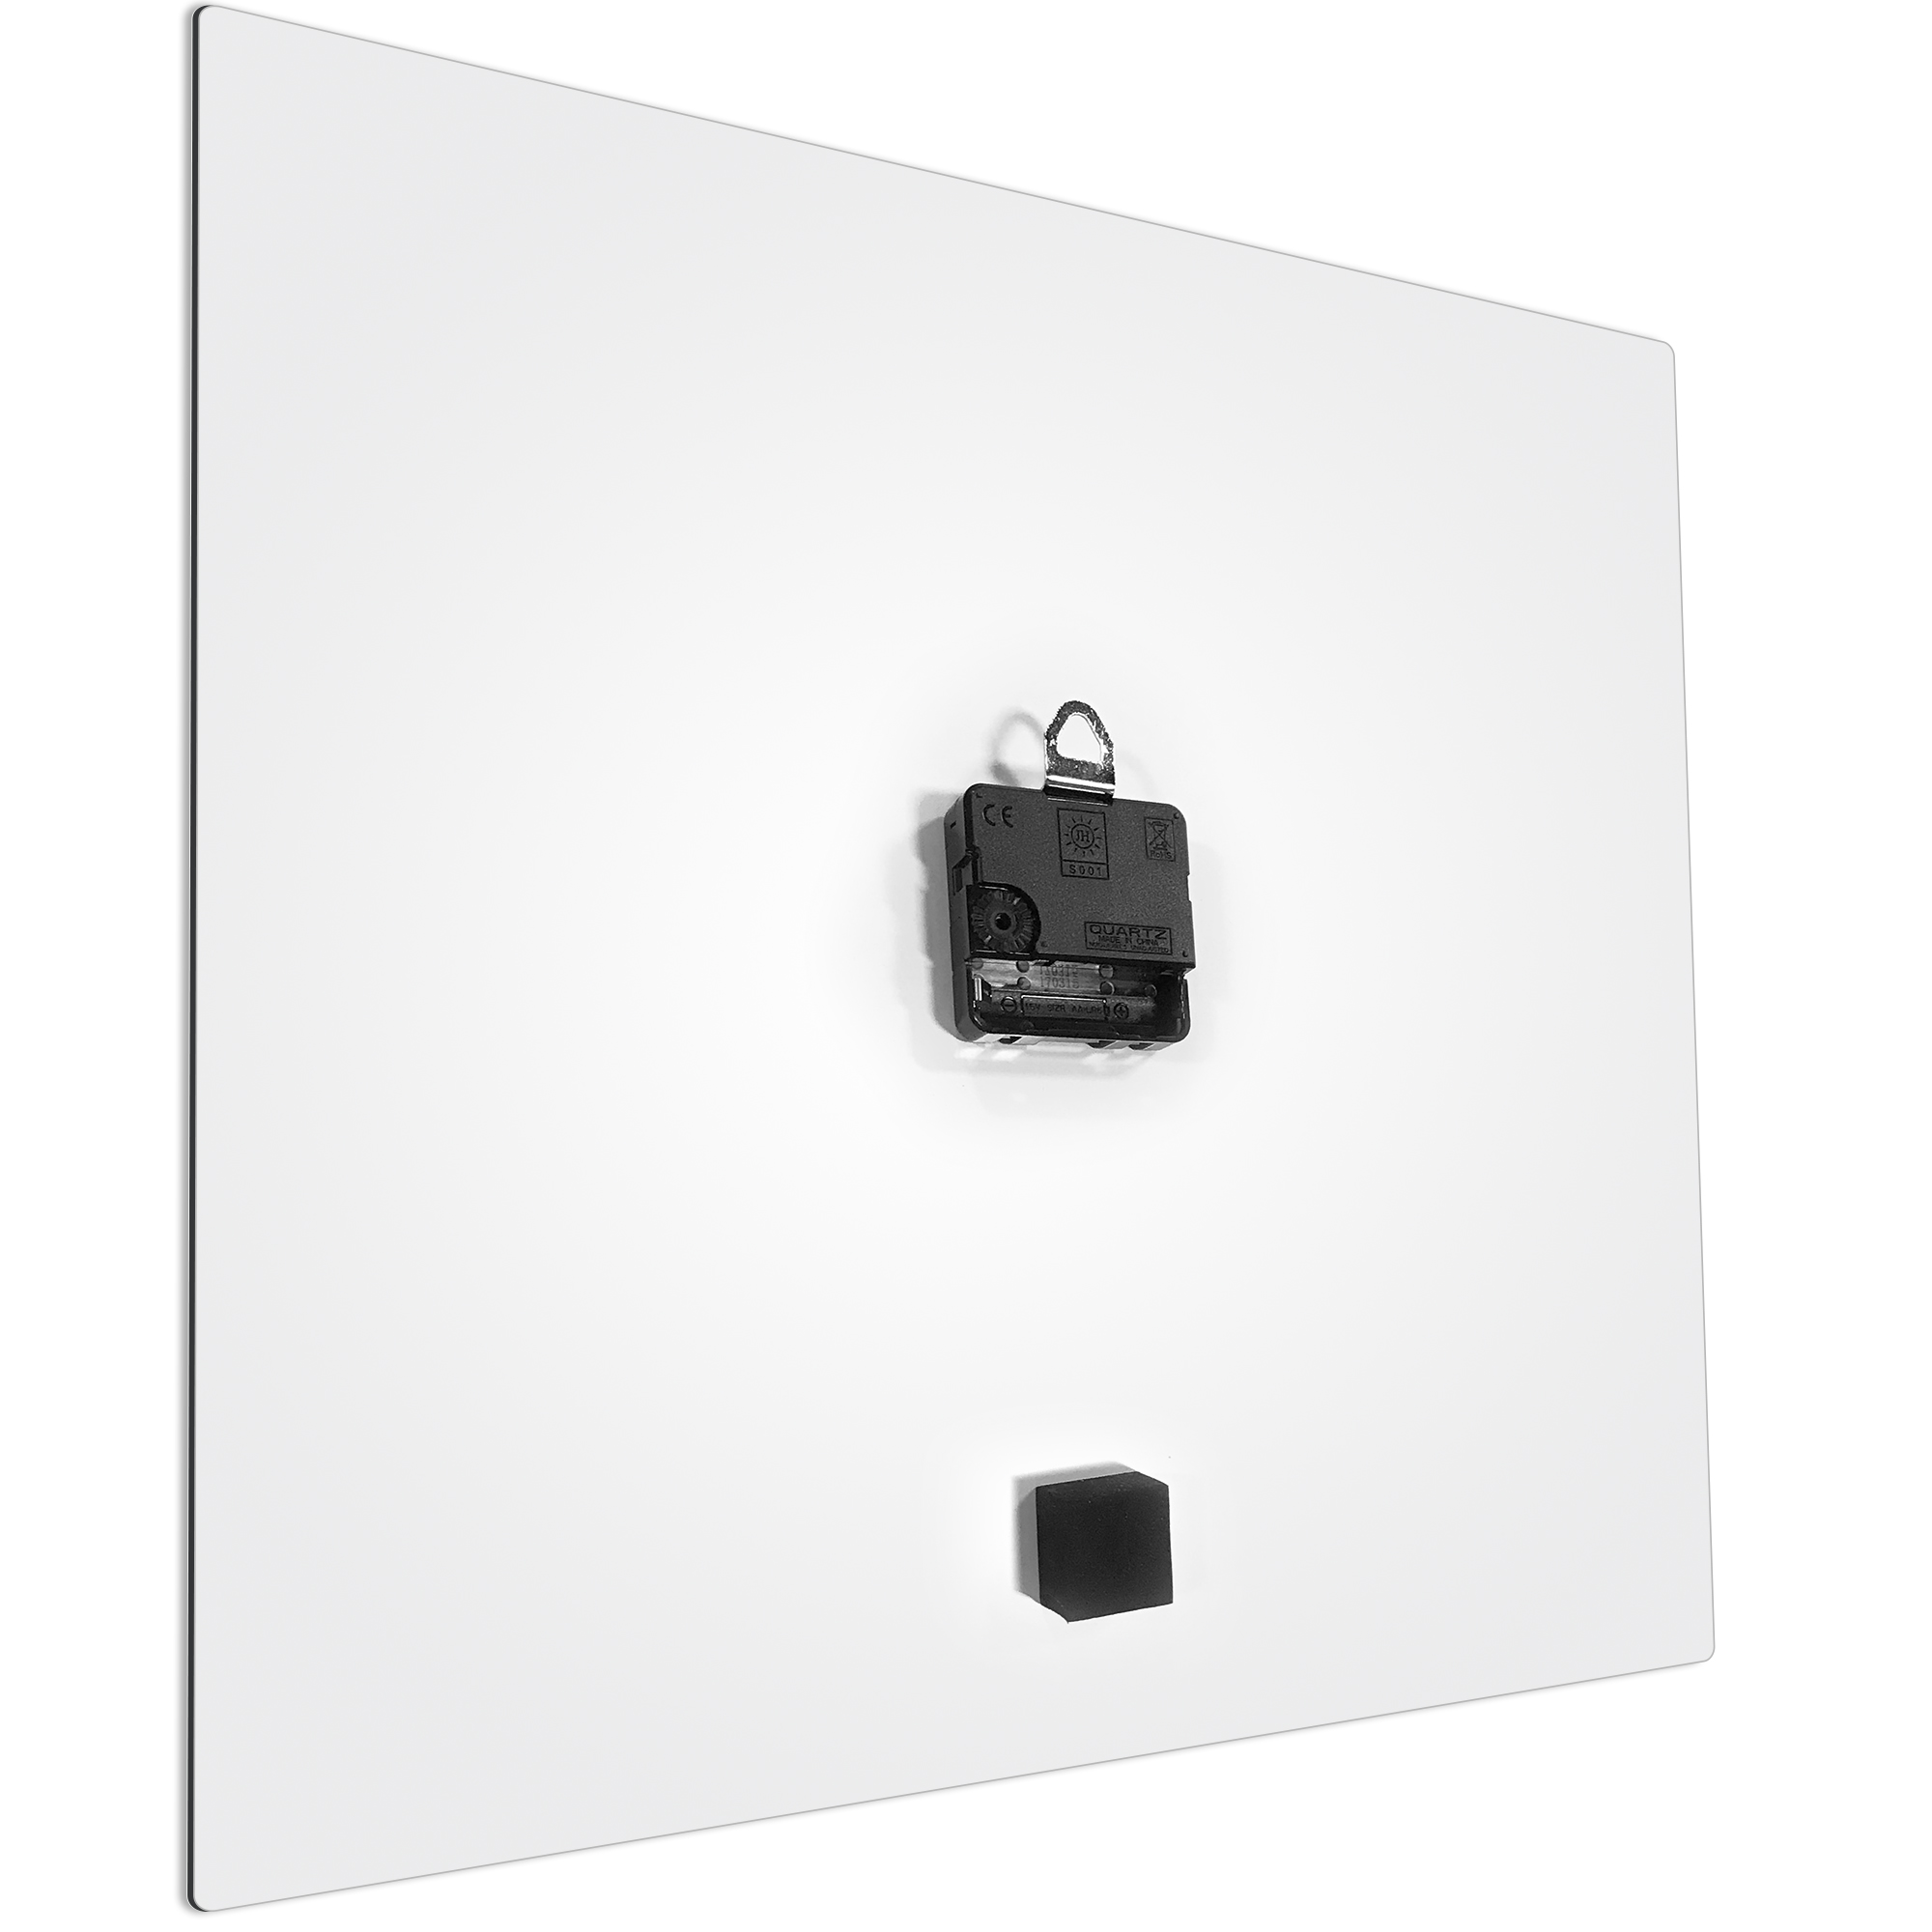 Grayout White Square Clock Large by Adam Schwoeppe Contemporary Clock on Aluminum Polymetal - Alternate View 3